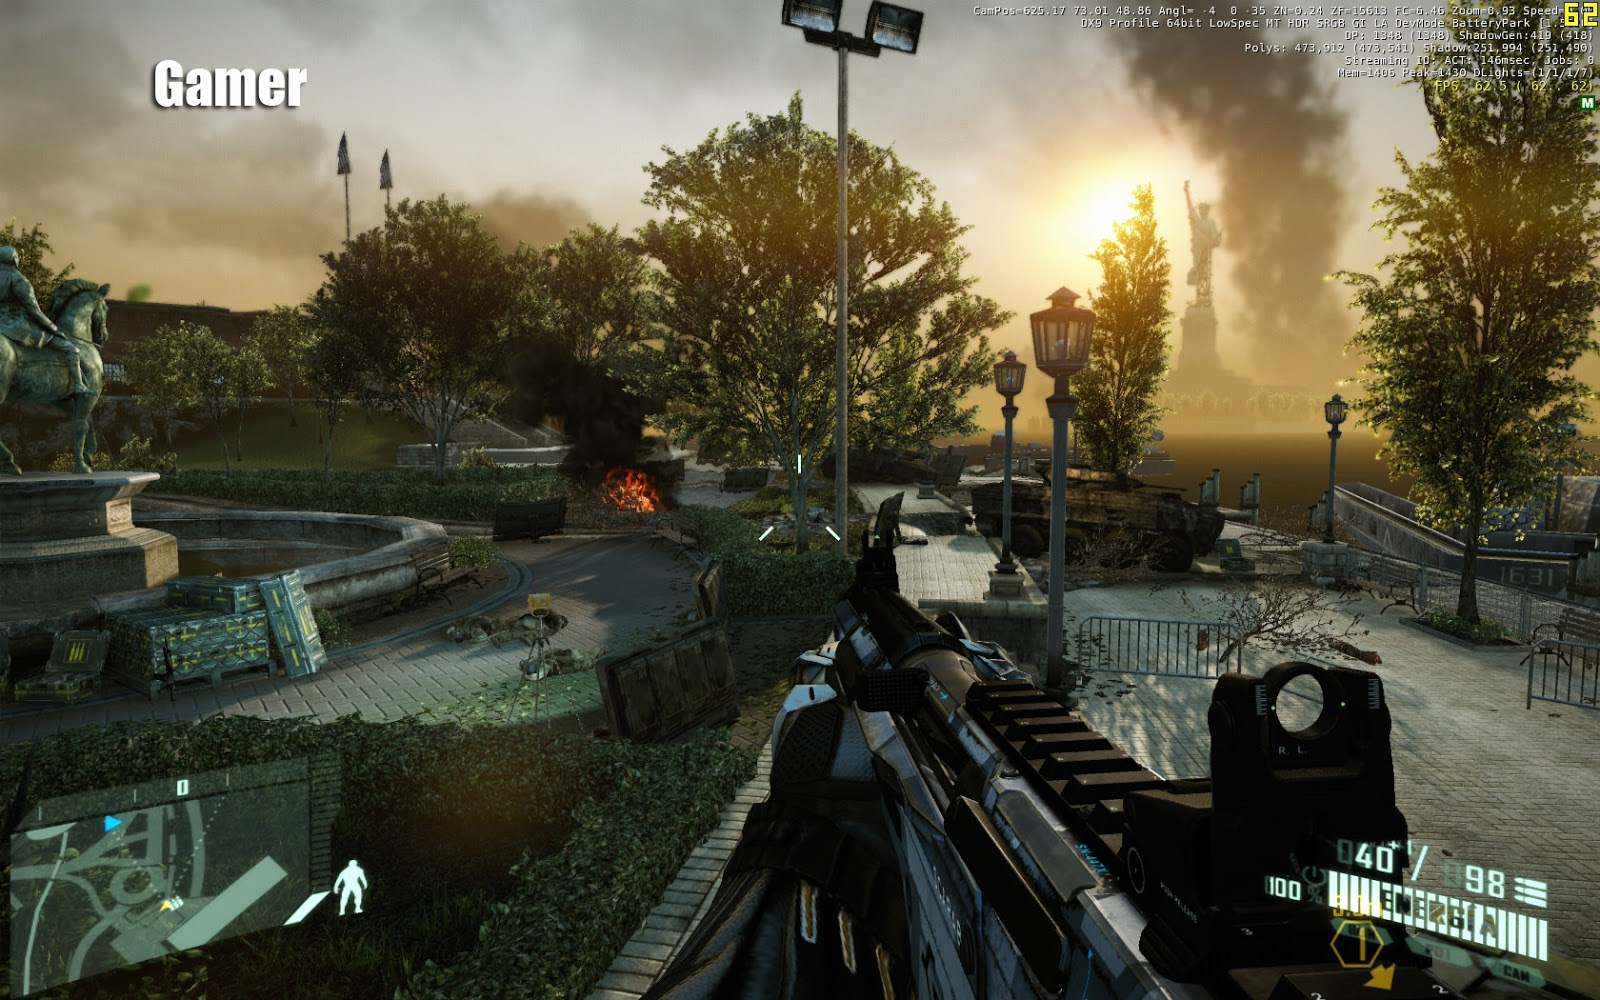 3d analyzer settings for all games free download